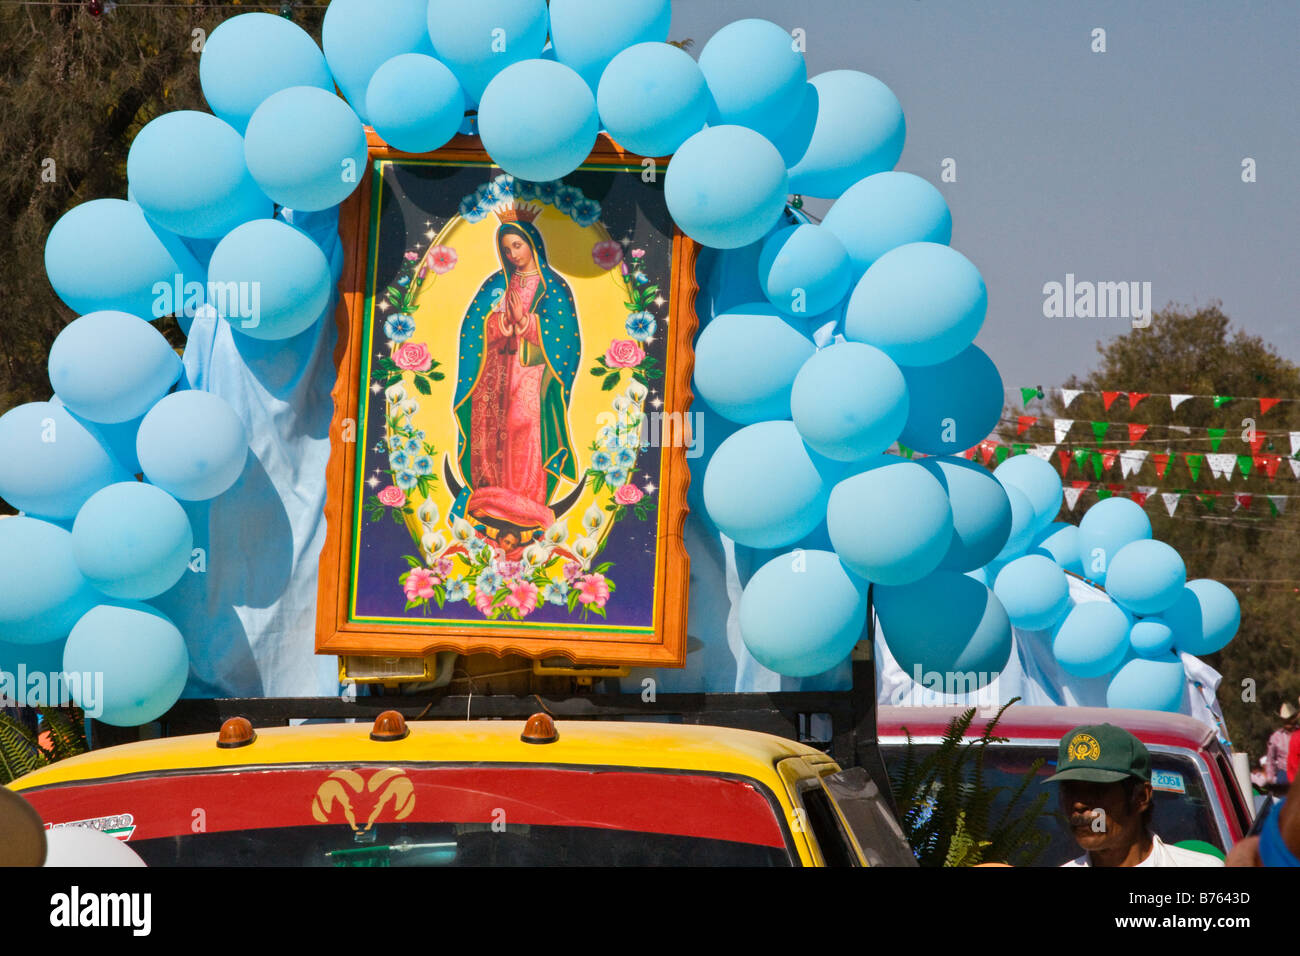 An image of the revered VIRGIN OF GUADALUPE during her festival in December LOS RODRIGUEZ GUANAJUATO MEXICO - Stock Image